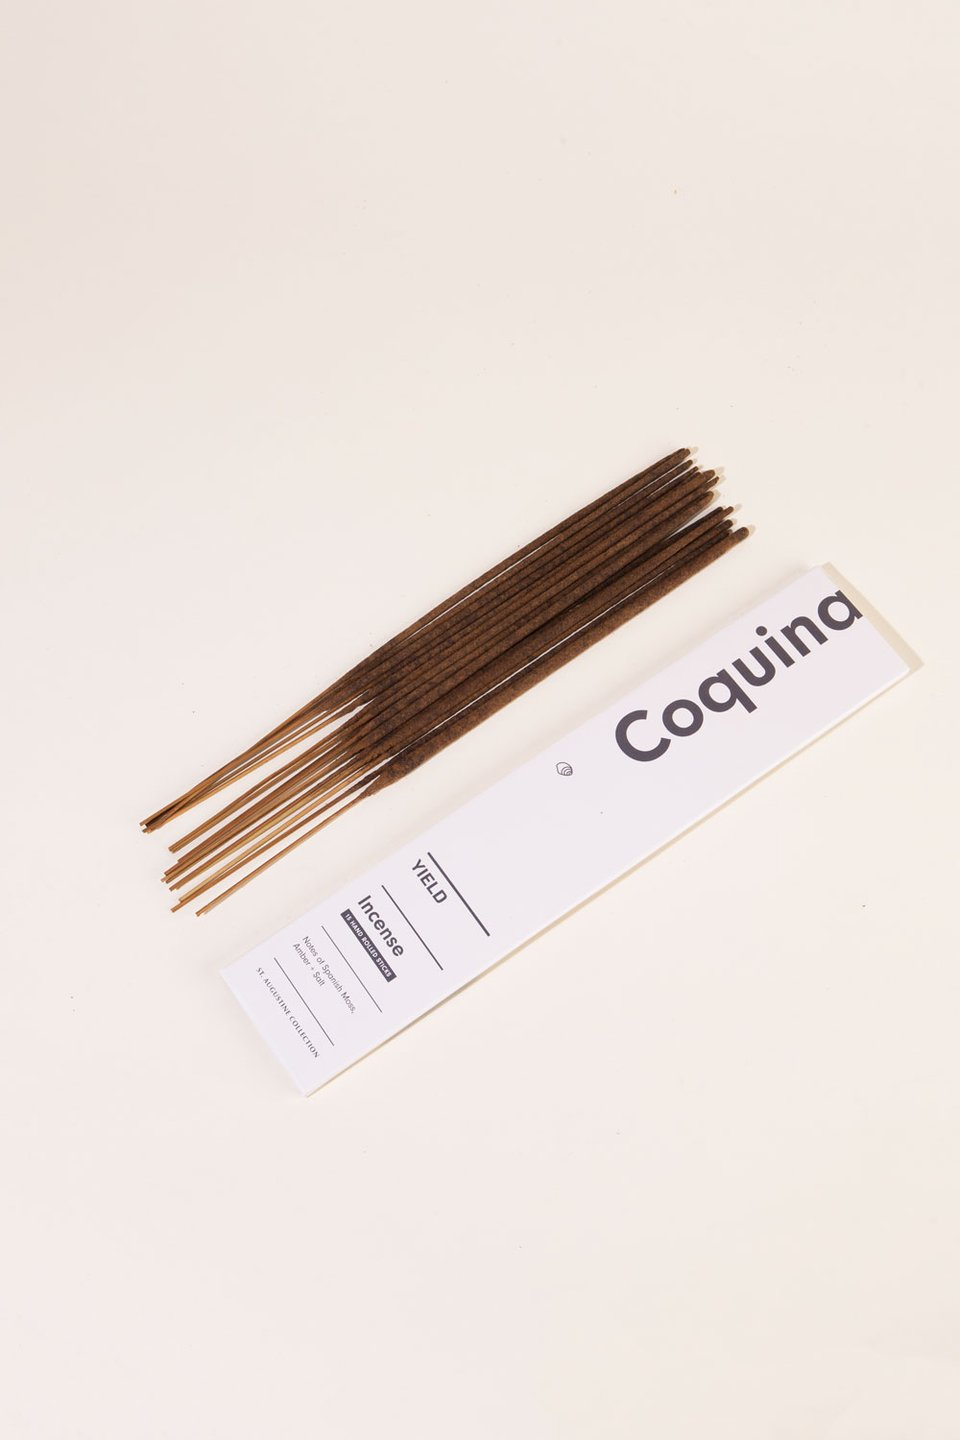 Coquina Incense by YIELD